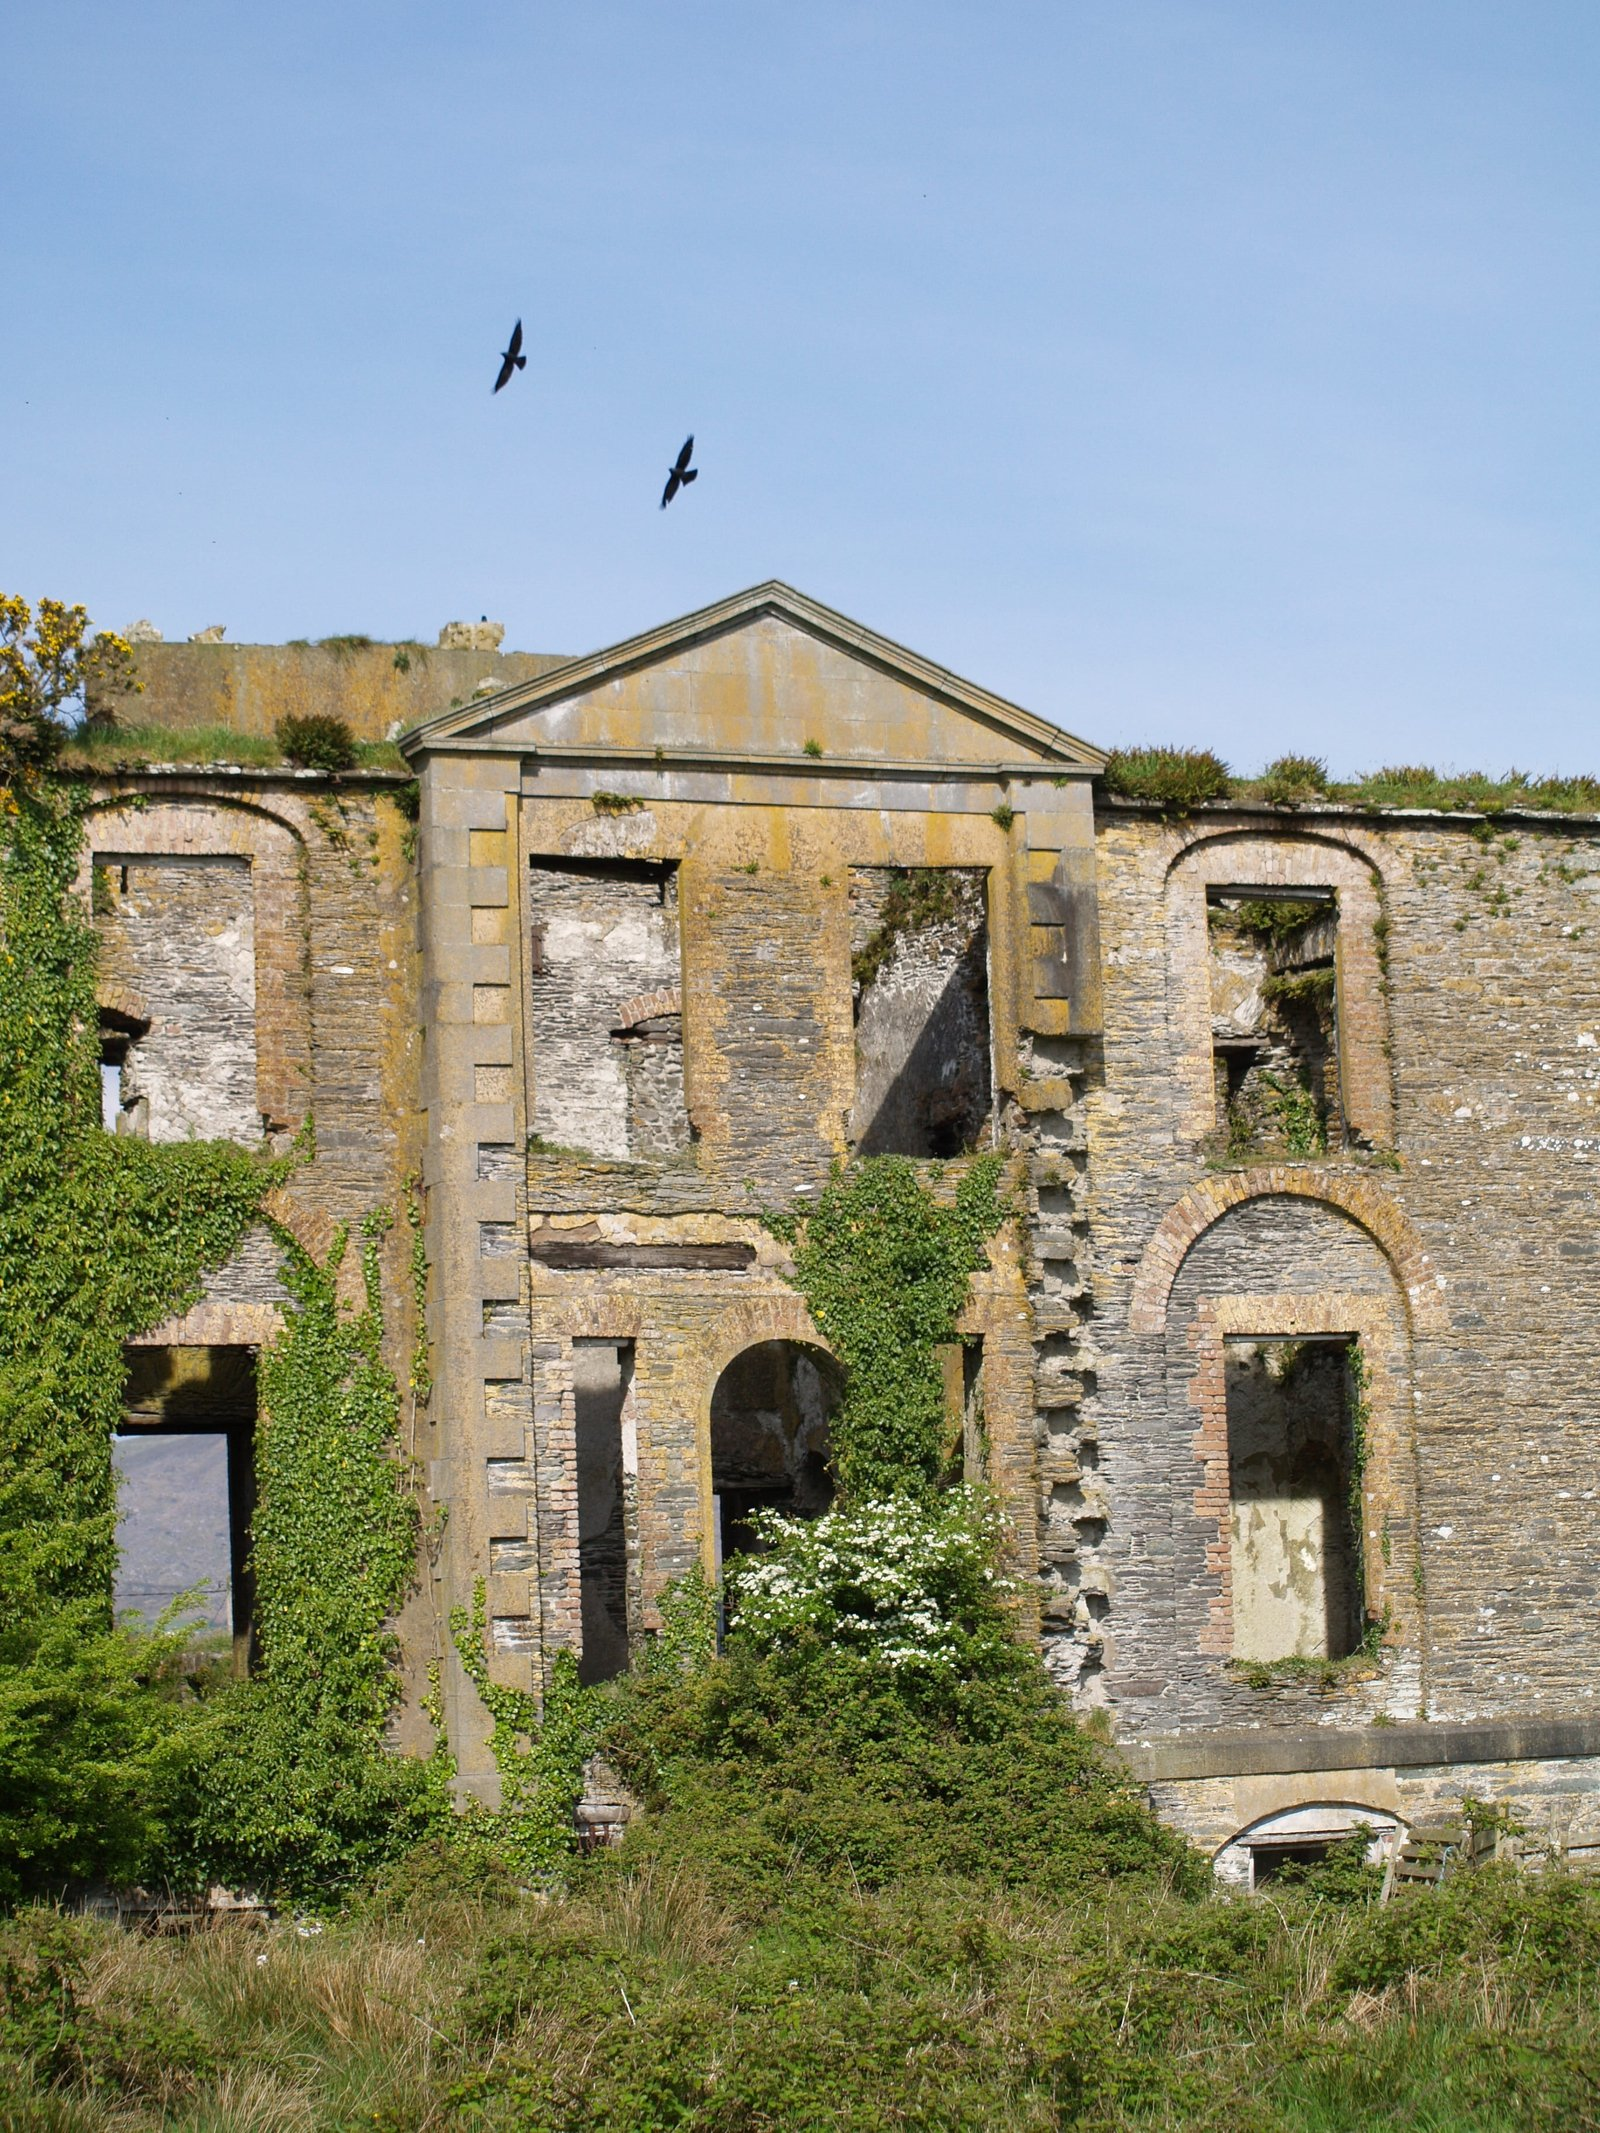 Image - The ruins of Bahaghs workhouse near Cahersiveen, Co. Kerry. Photo: John Crowley